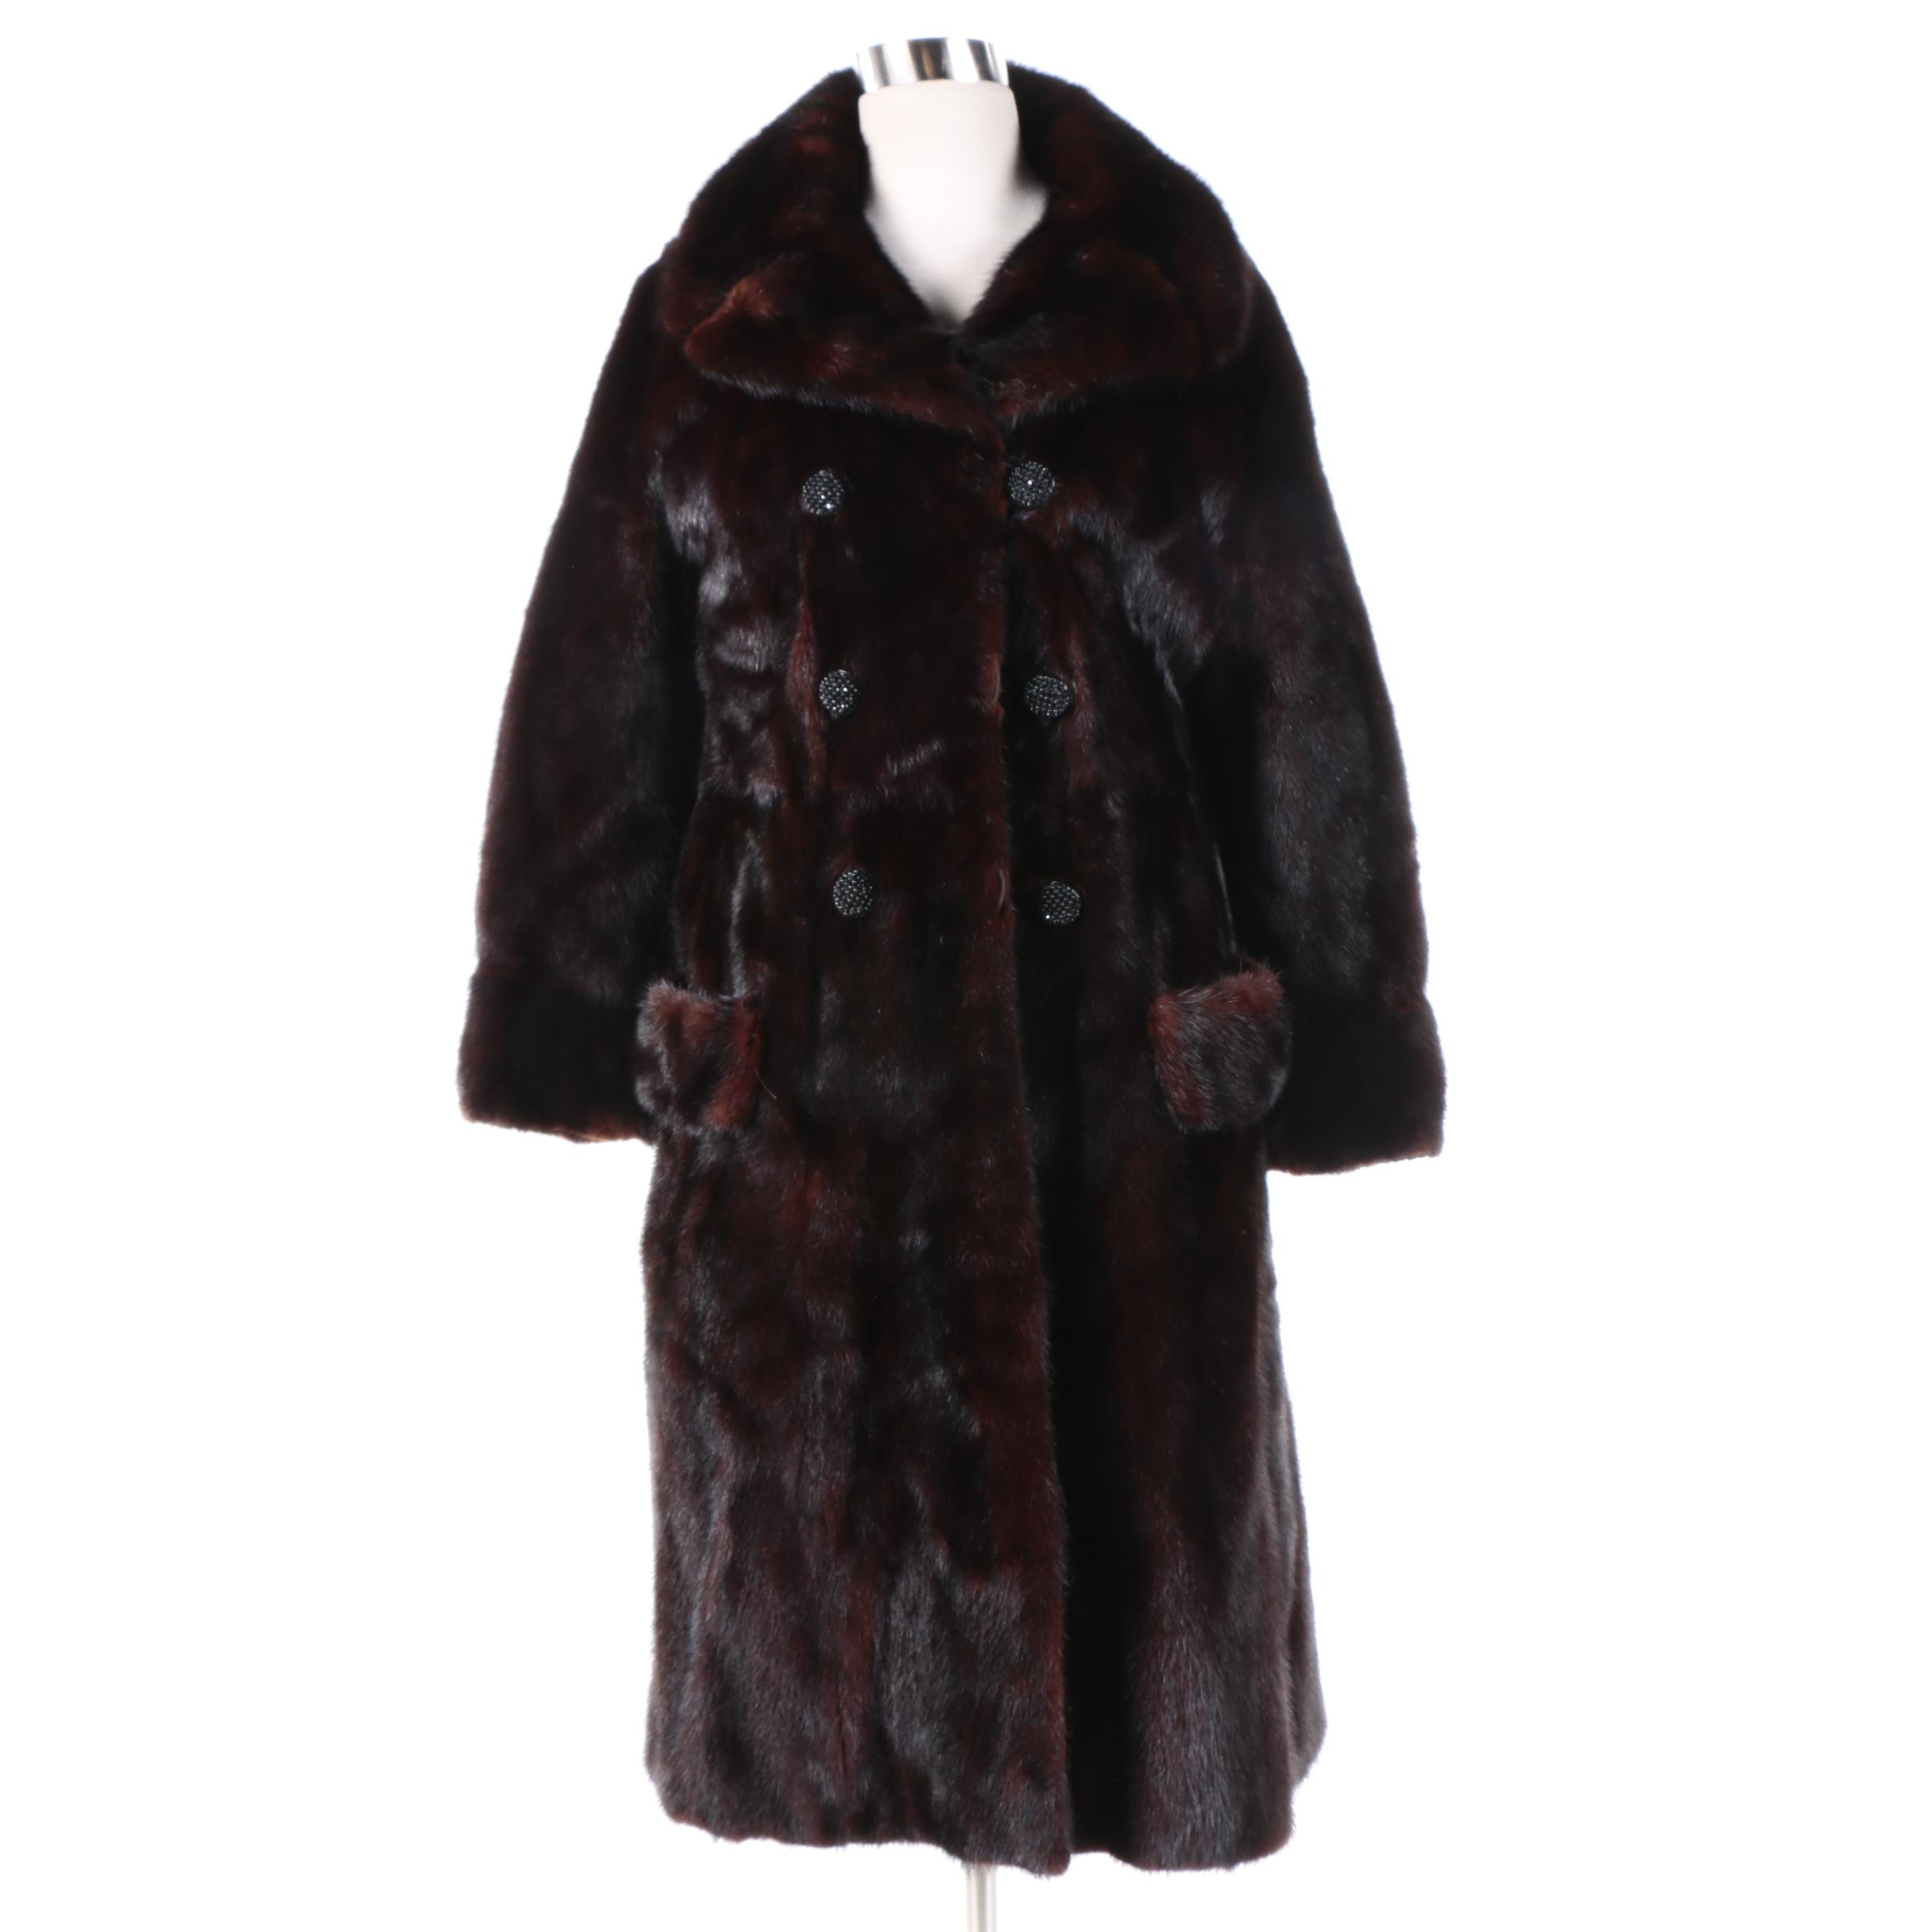 Women's Vintage Furs by Carleton's Mink Fur Double-Breasted Coat